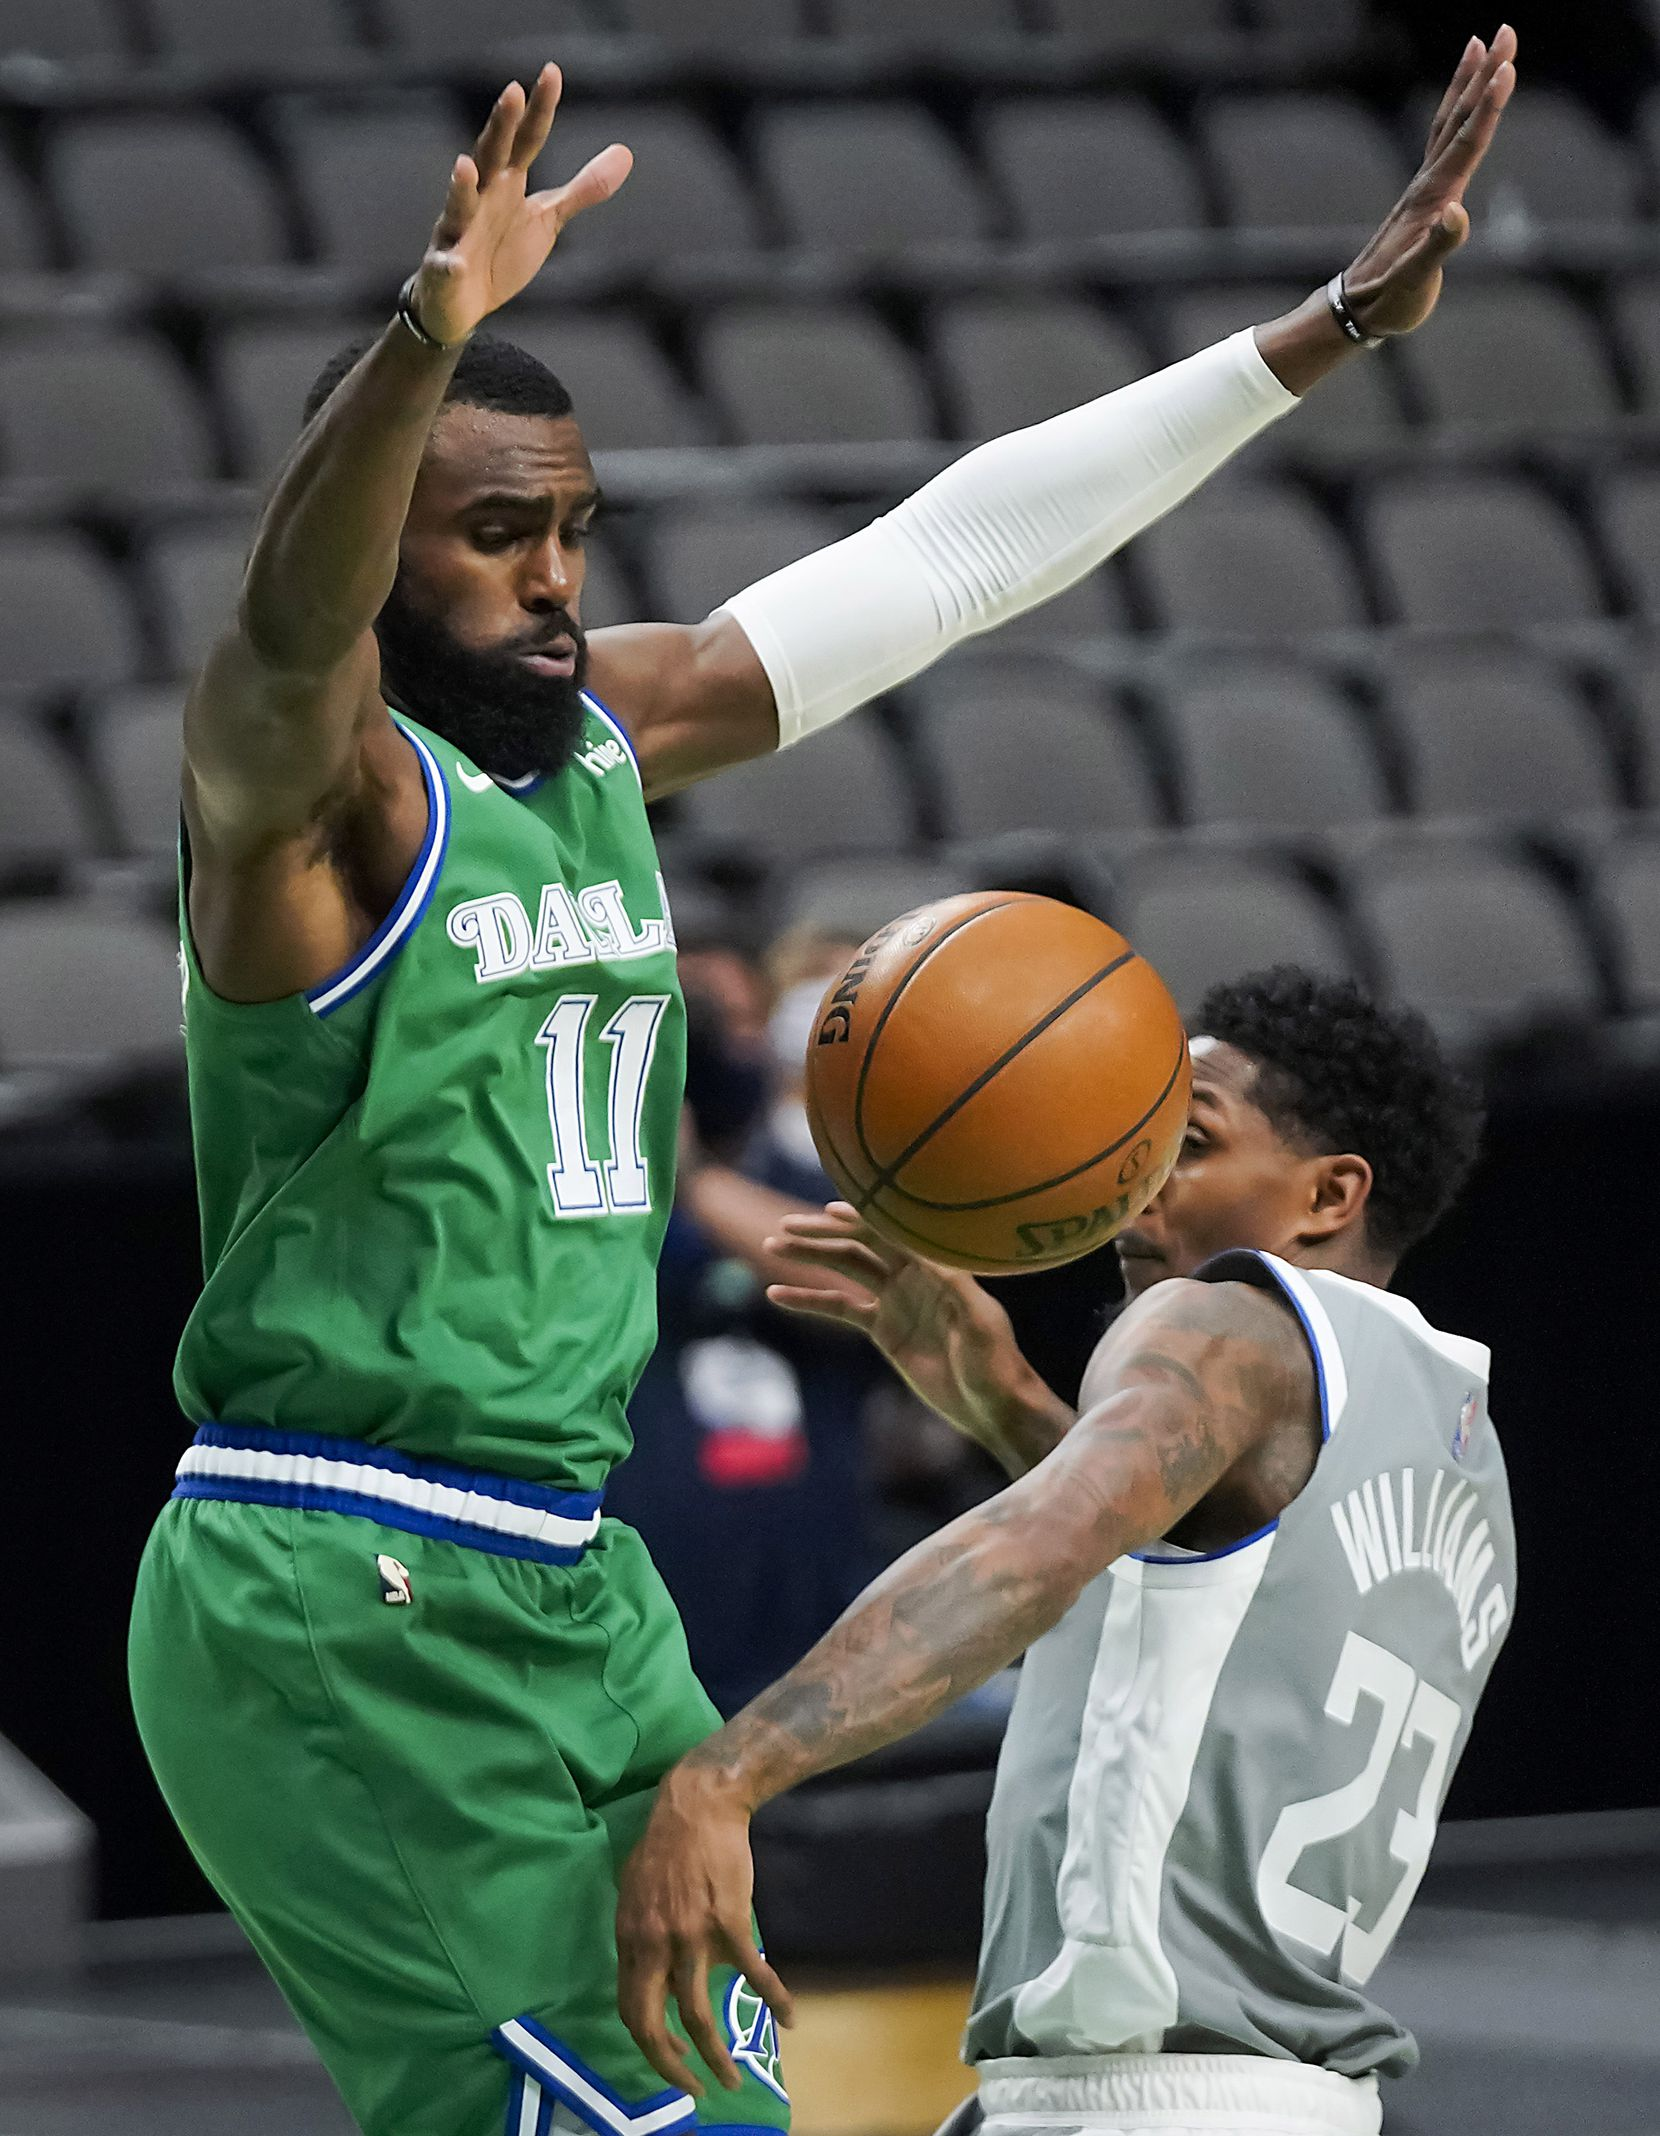 Dallas Mavericks forward Tim Hardaway Jr. (11) defends against LA Clippers guard Lou Williams (23) during the second half of an NBA basketball game at American Airlines Center on Wednesday, March 17, 2021, in Dallas.